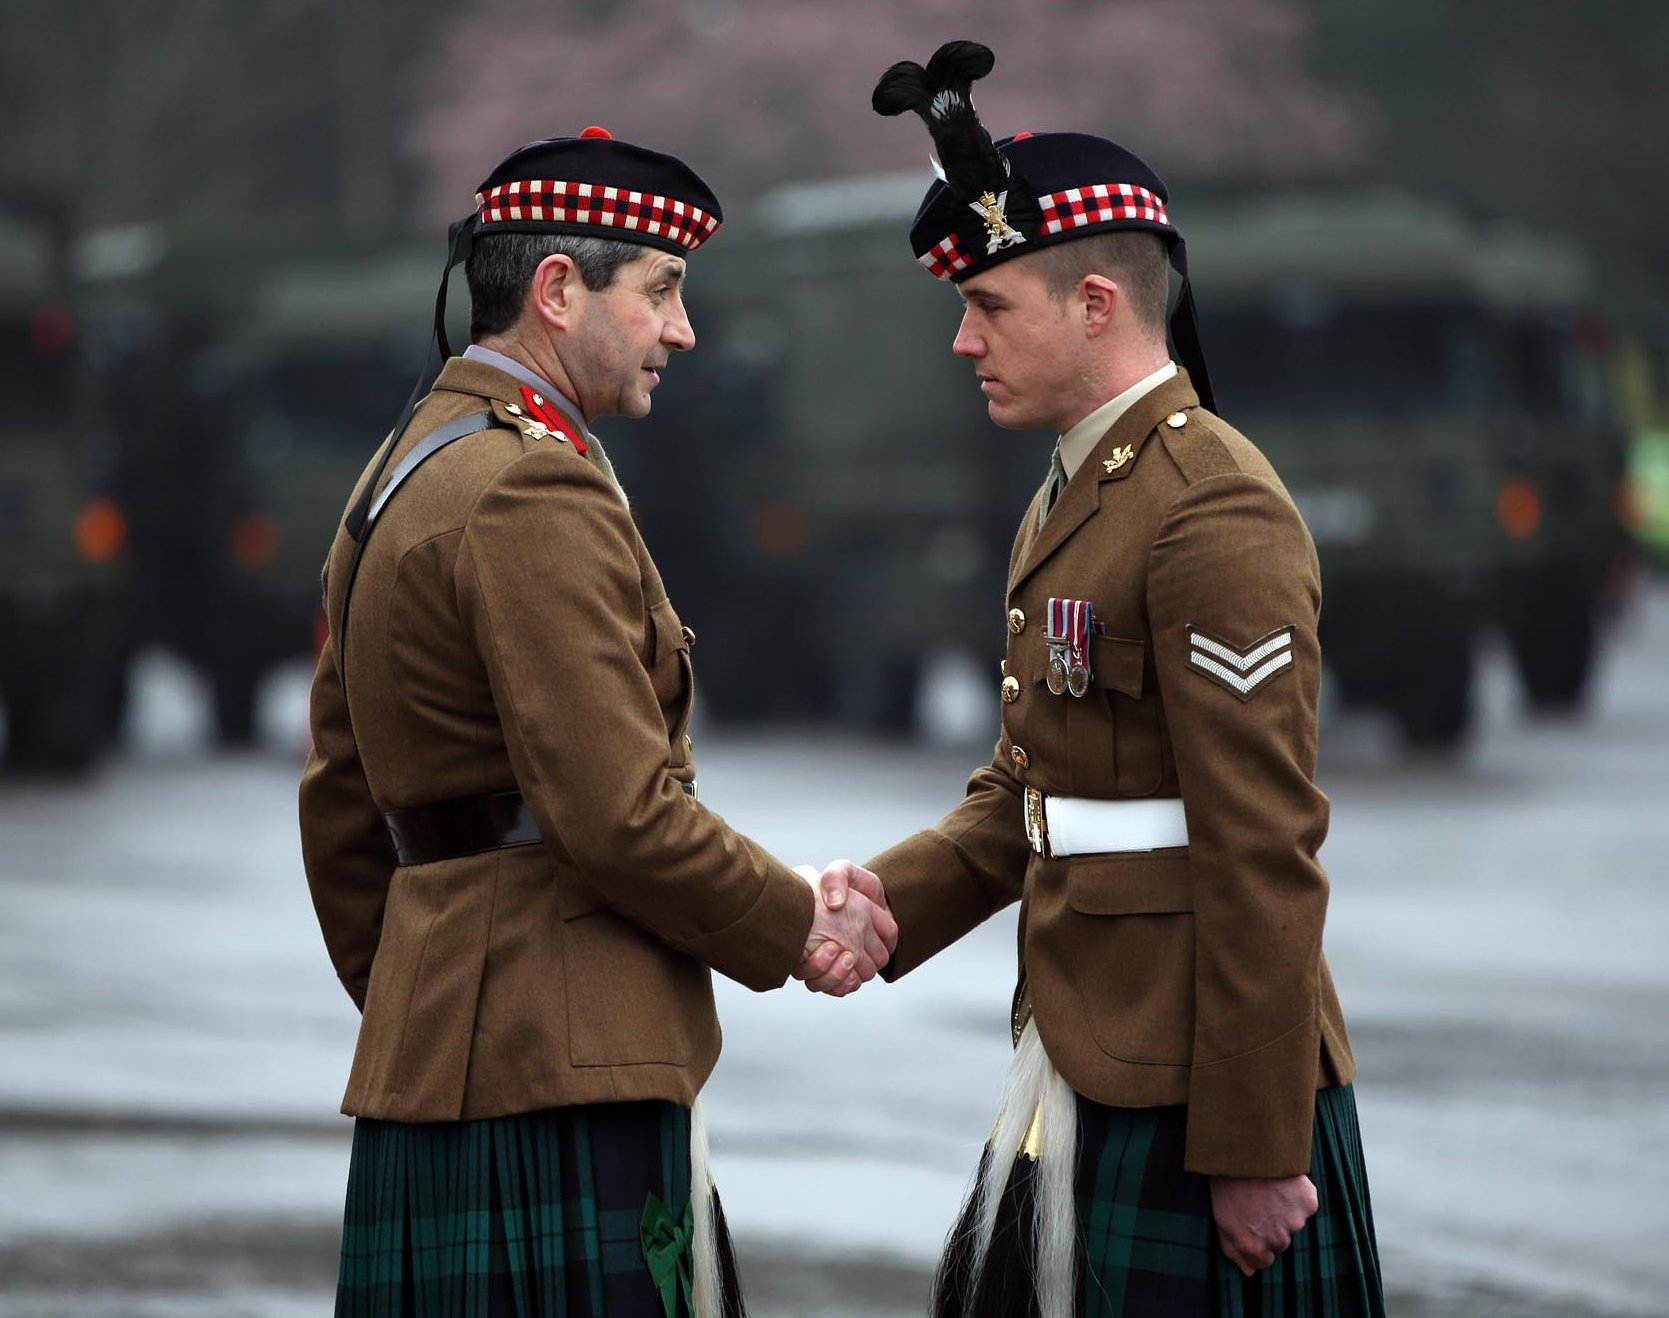 Brigadier Bob Bruce congratulates Corporal Connor Grant, right, of 2 SCOTS on being awarded a Queen's Commendation for Bravery while serving in Afghanistan.